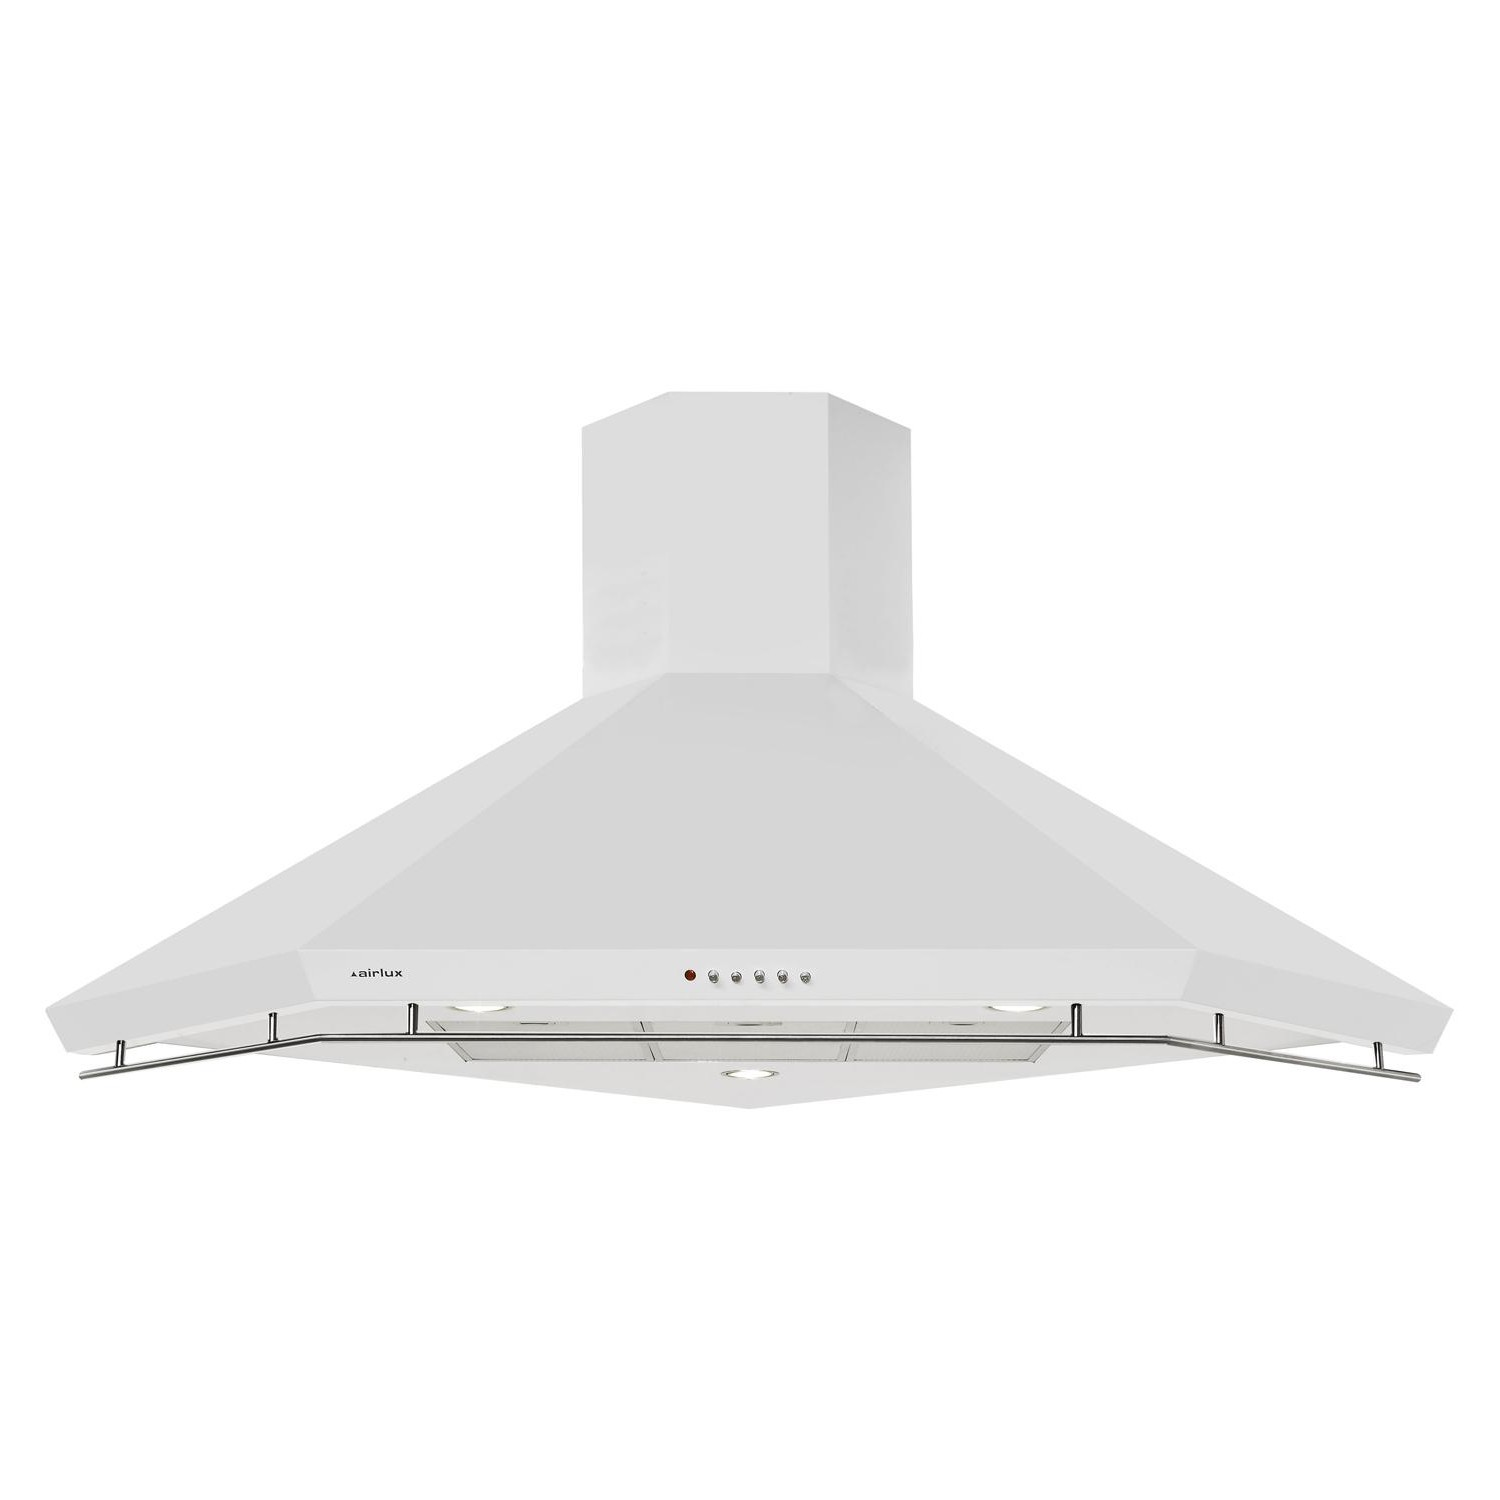 Hotte D Angle Cuisine hotte d'angle airlux ahk110wh - pas cher - electro10count